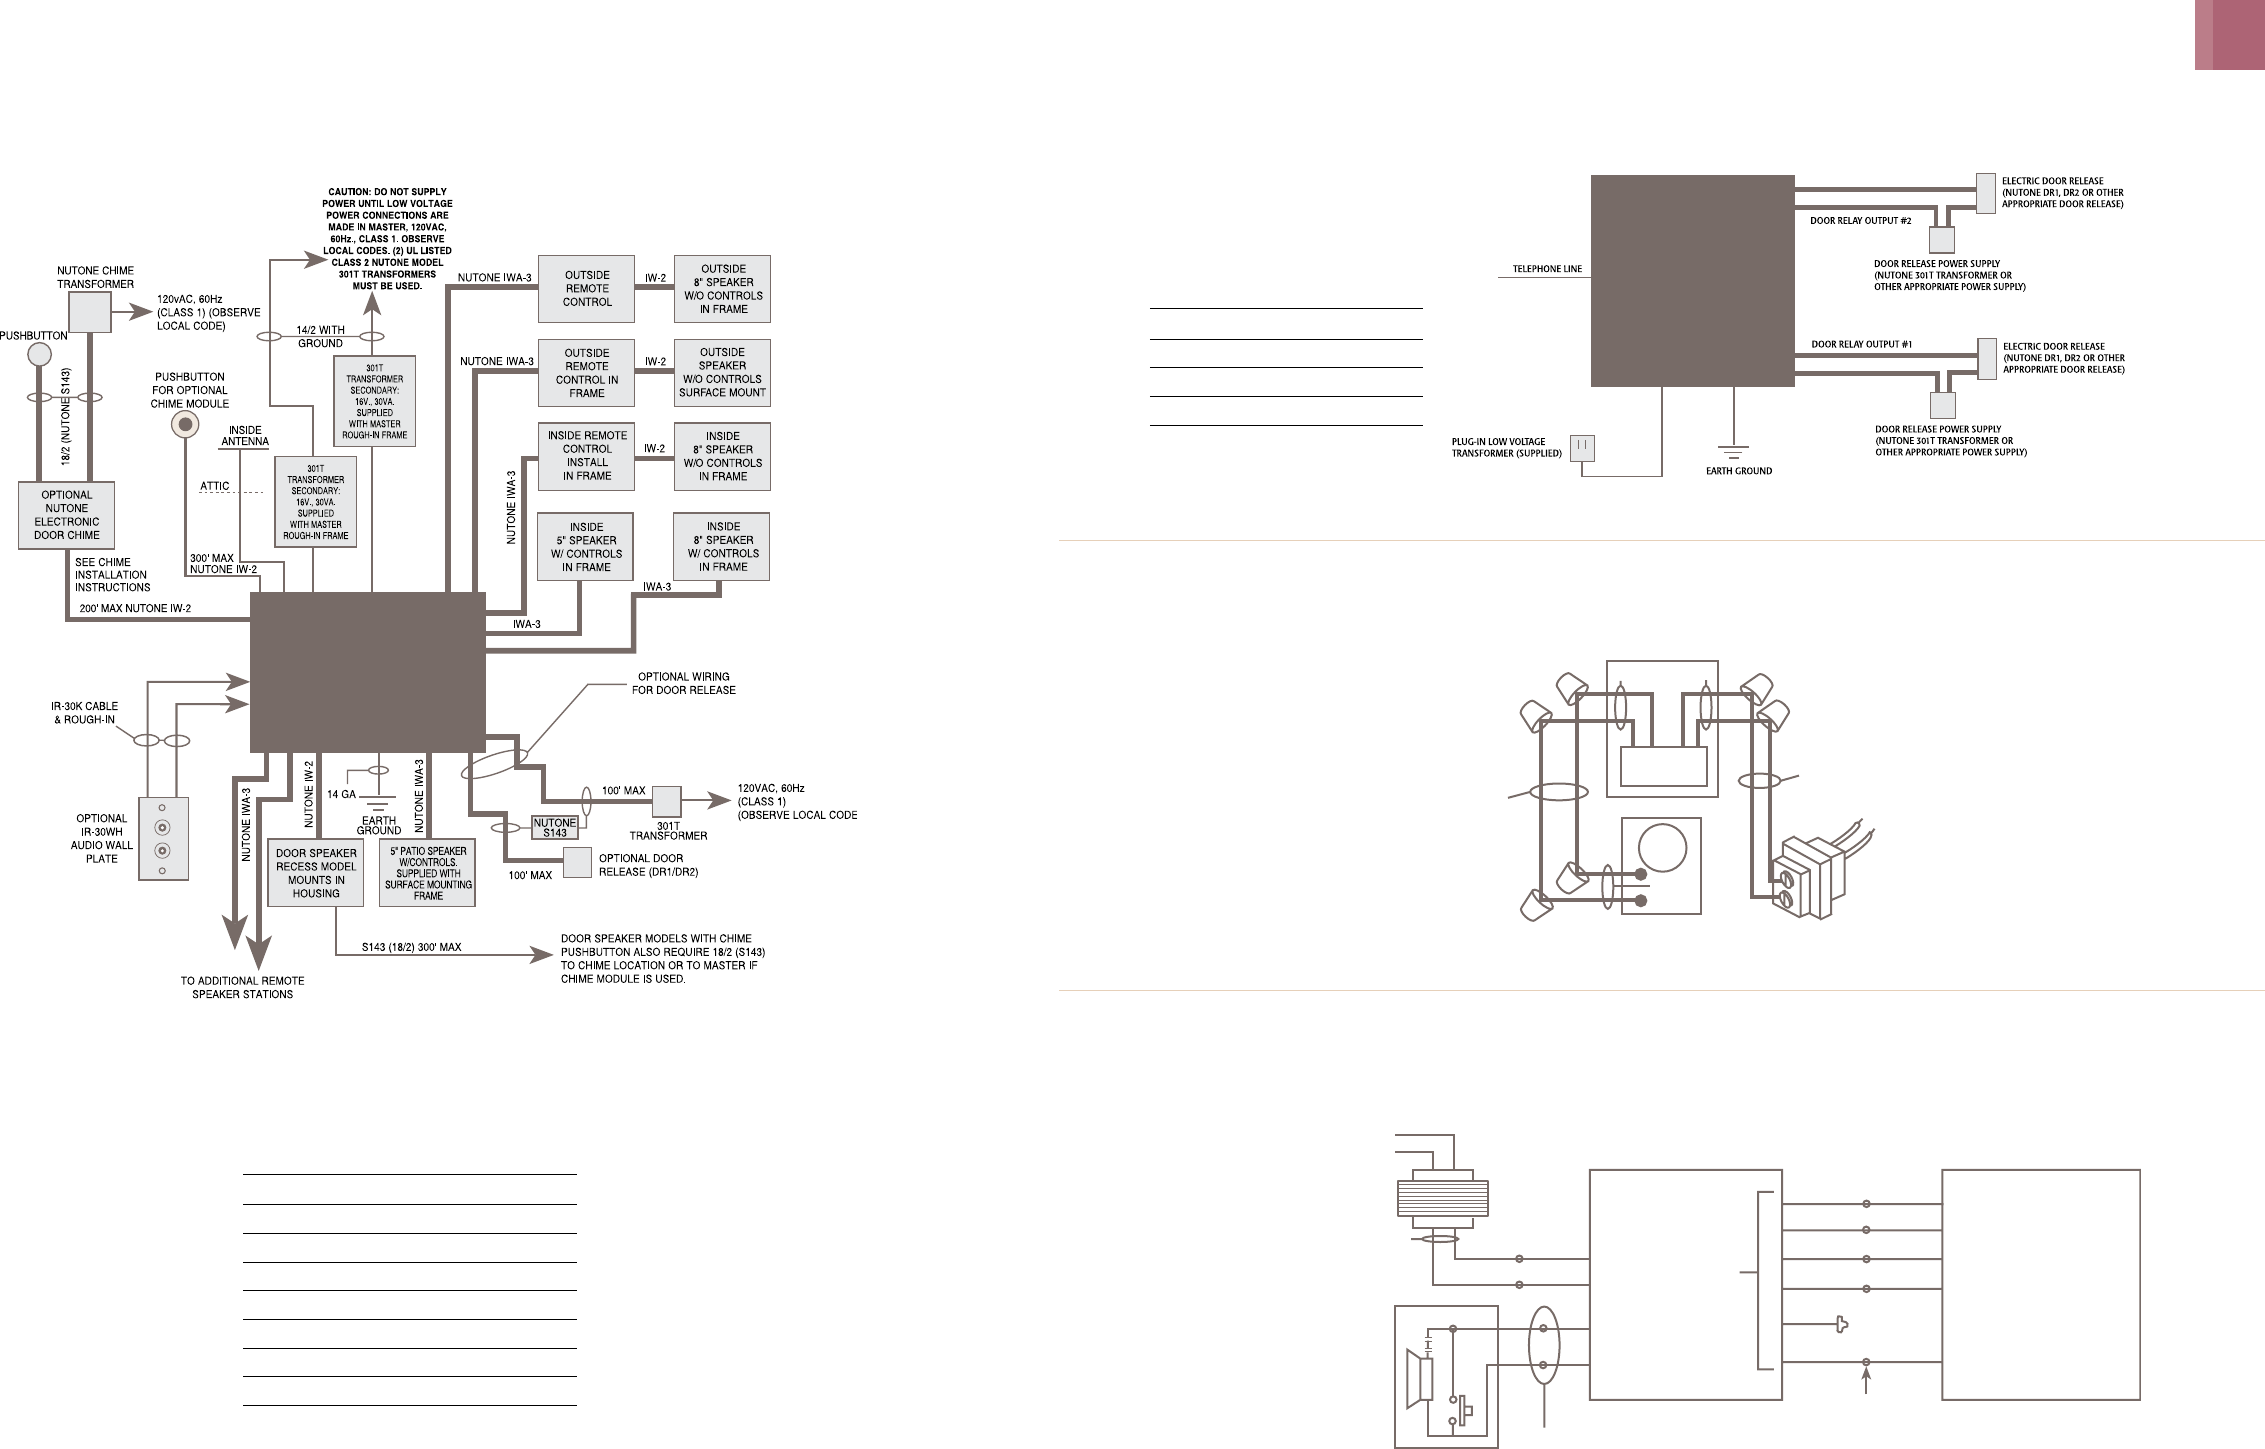 page 17 of nutone home theater system 301t user guide